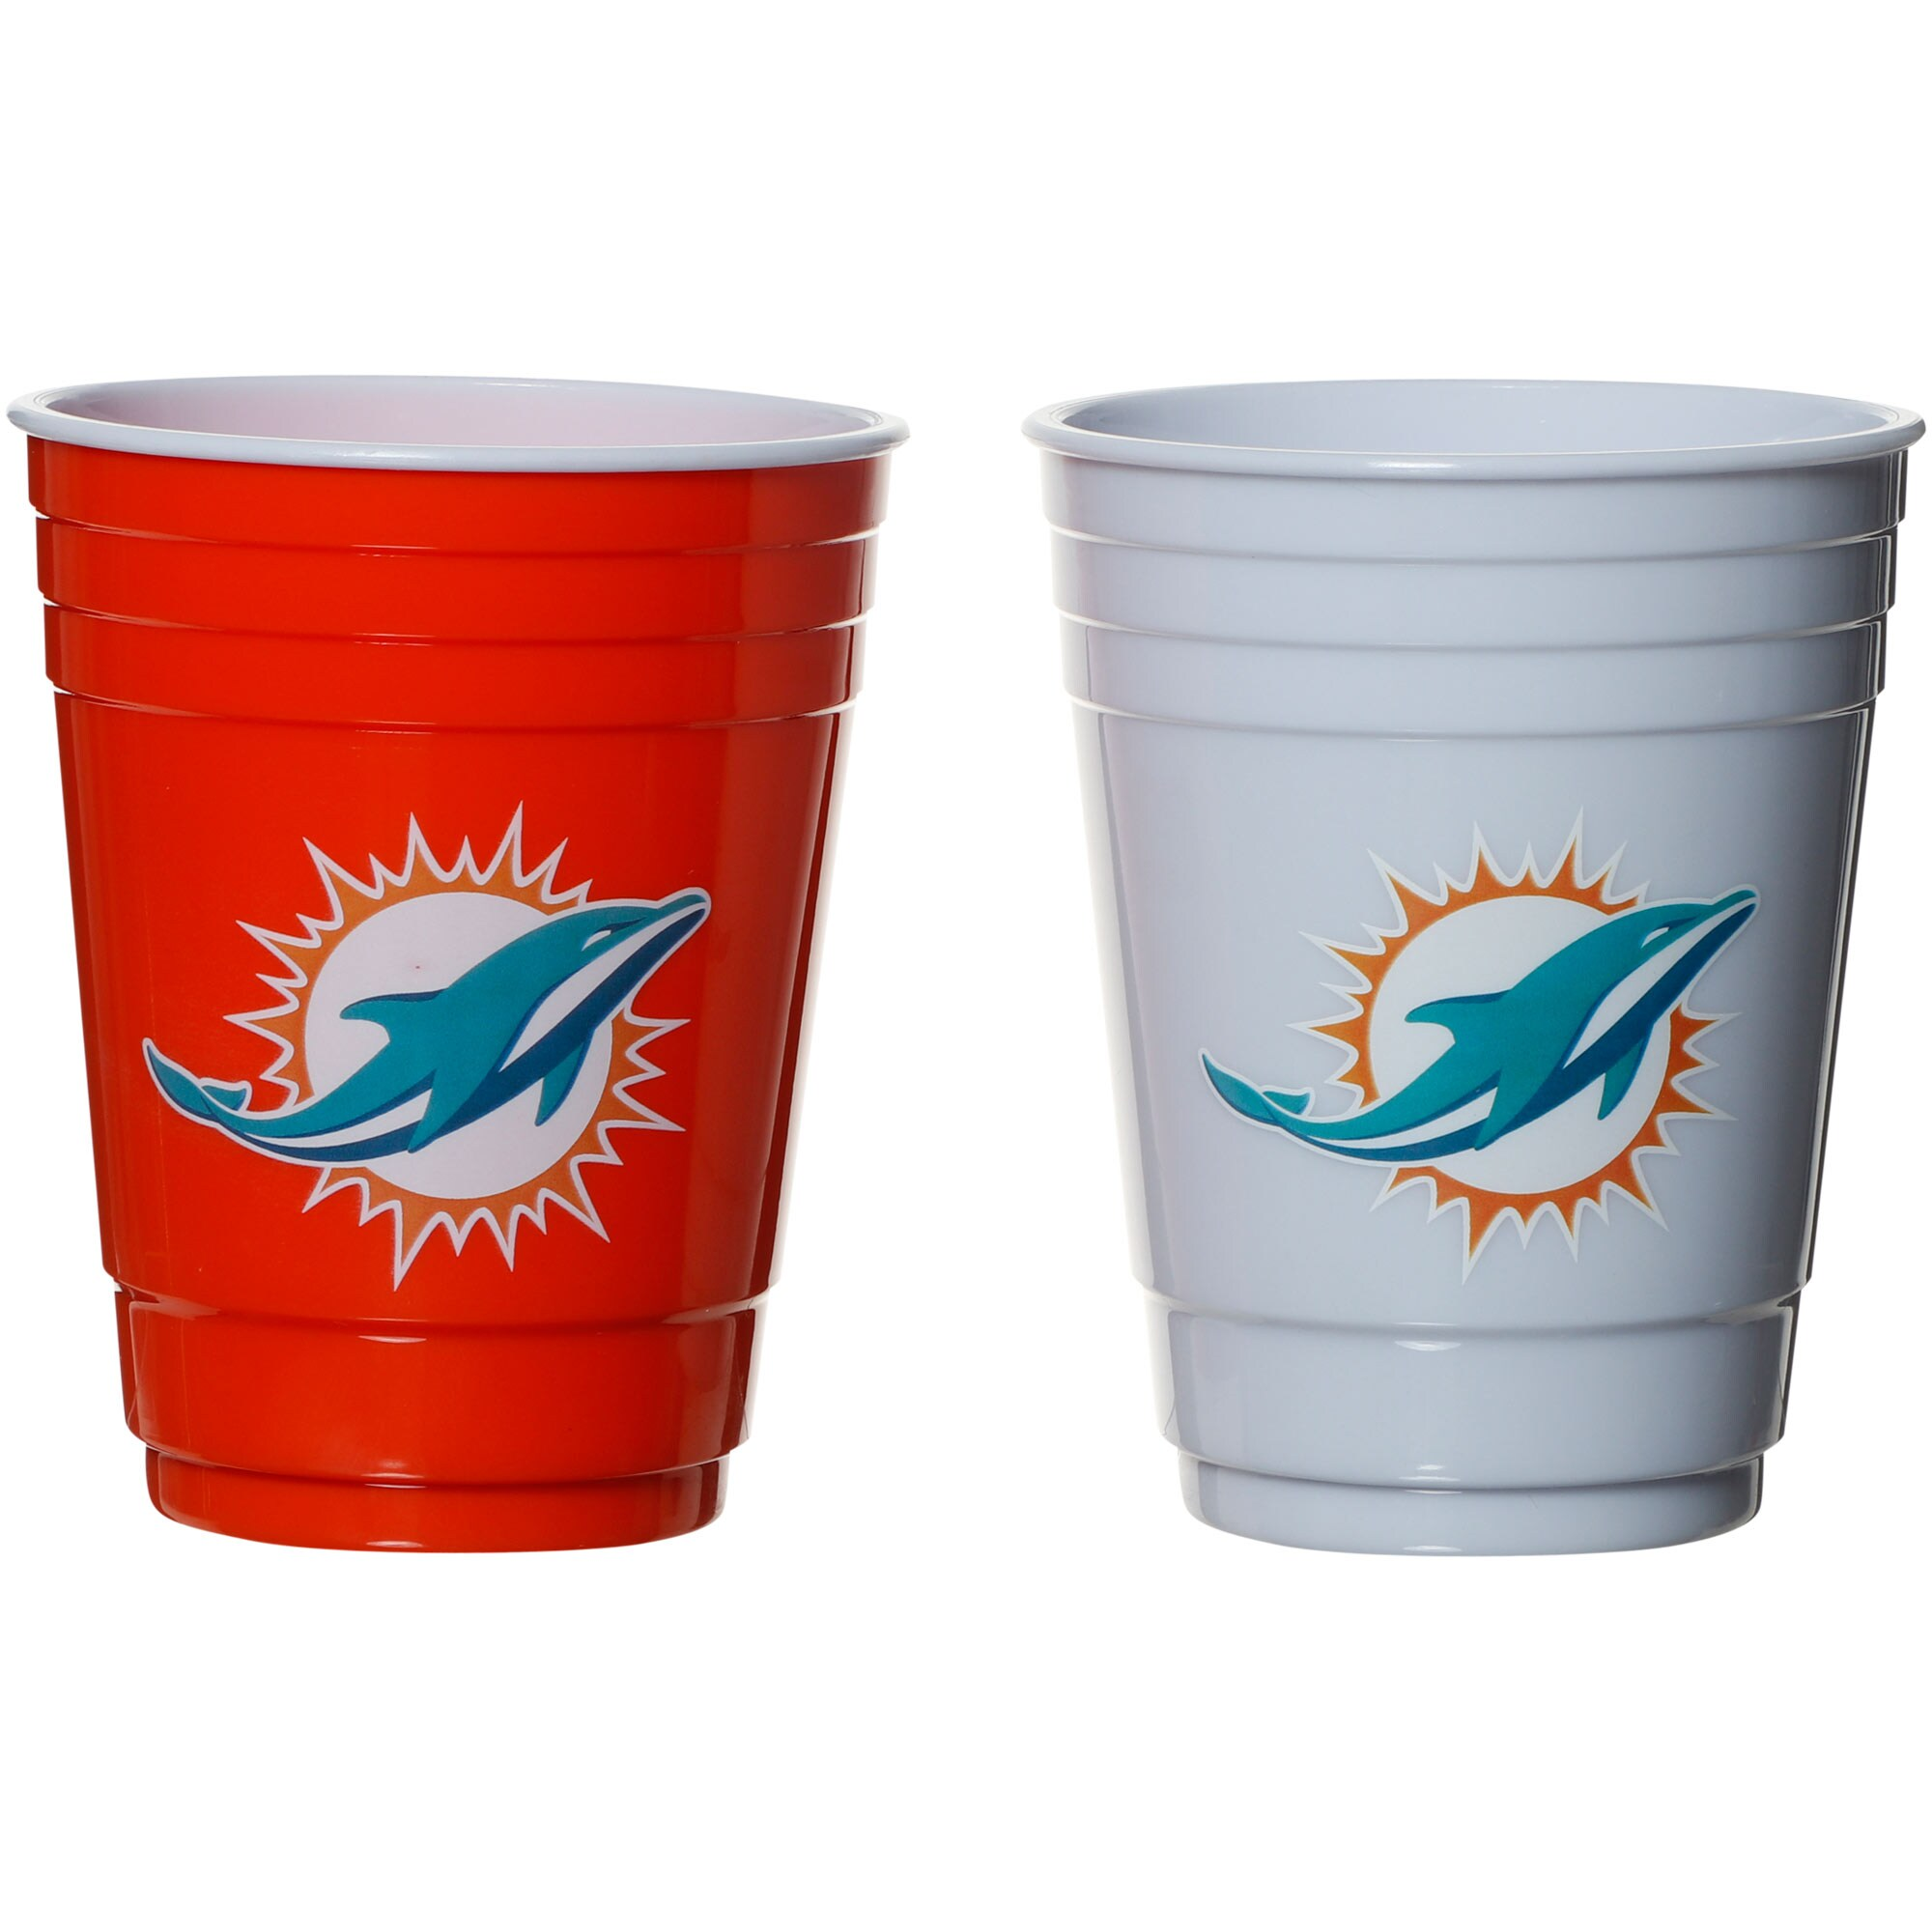 Miami Dolphins Two-Pack Home And Away Plastic Cup